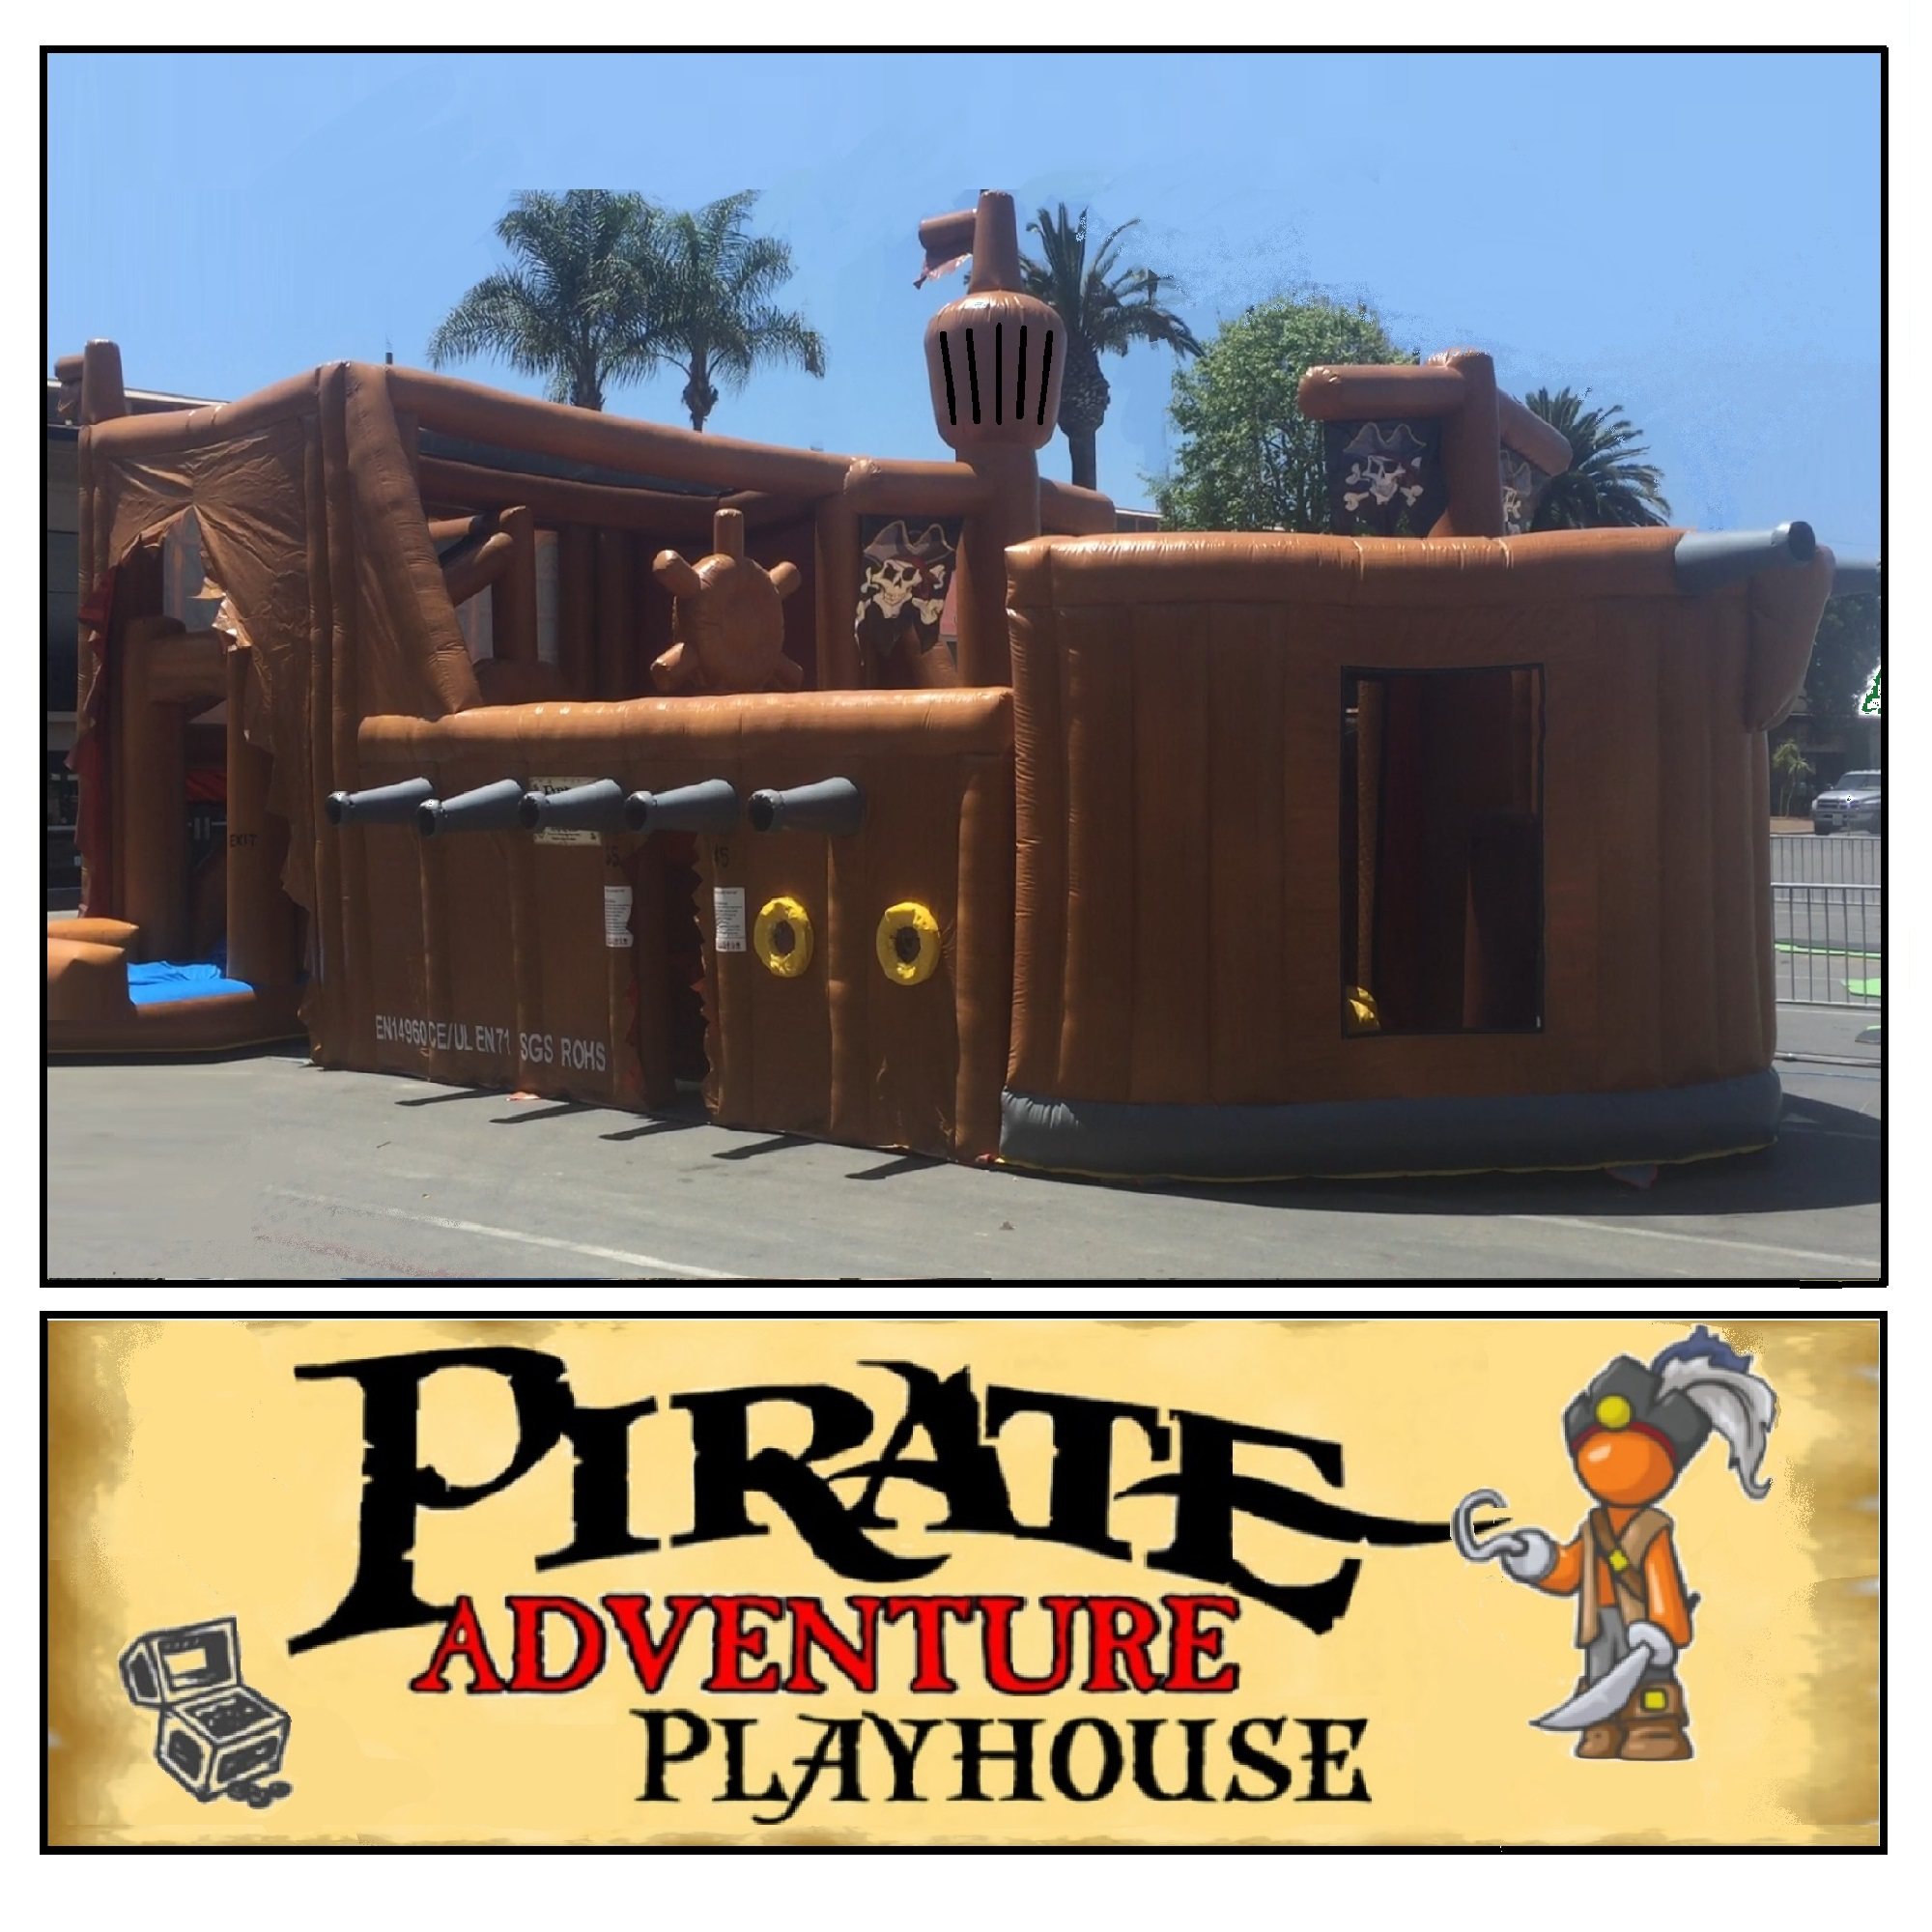 Pirate Adventure Playhouse